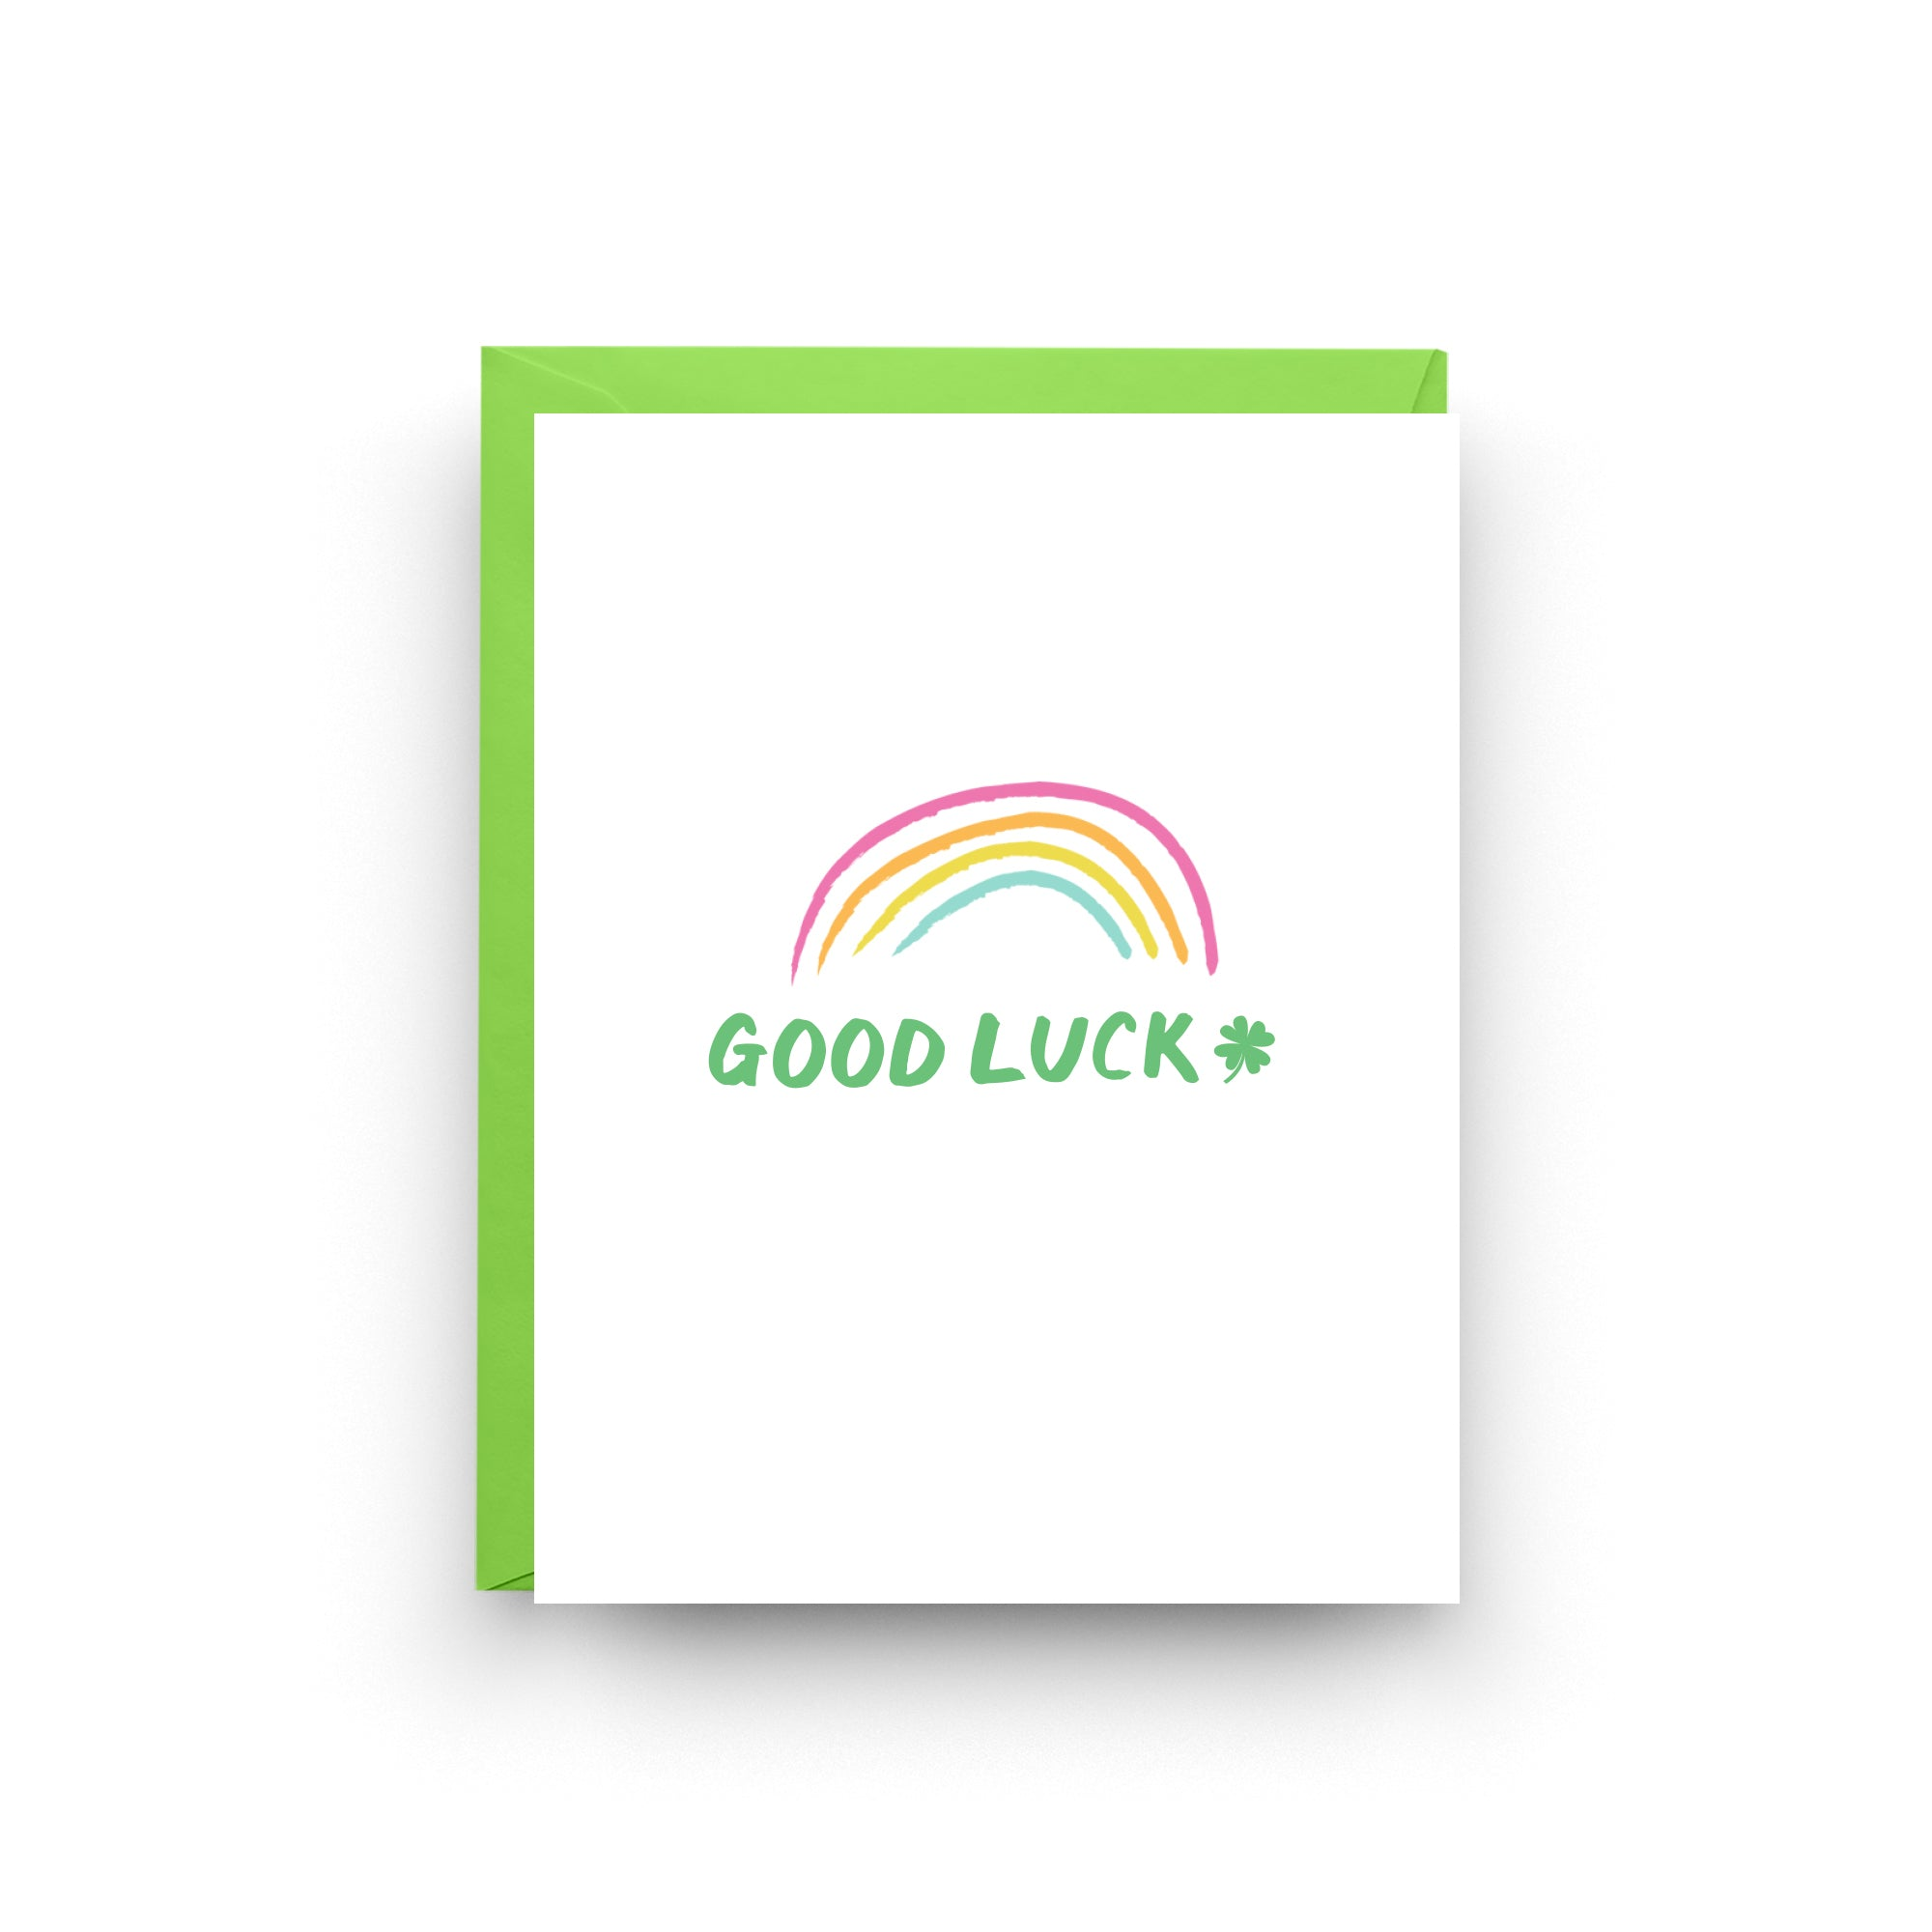 st patrick's day, good luck card, shamrock card, rainbow card, lucky card, st paddy's day, irish card, irish gift, four leaf clover, card for friend, on sale, mix and match, free shipping